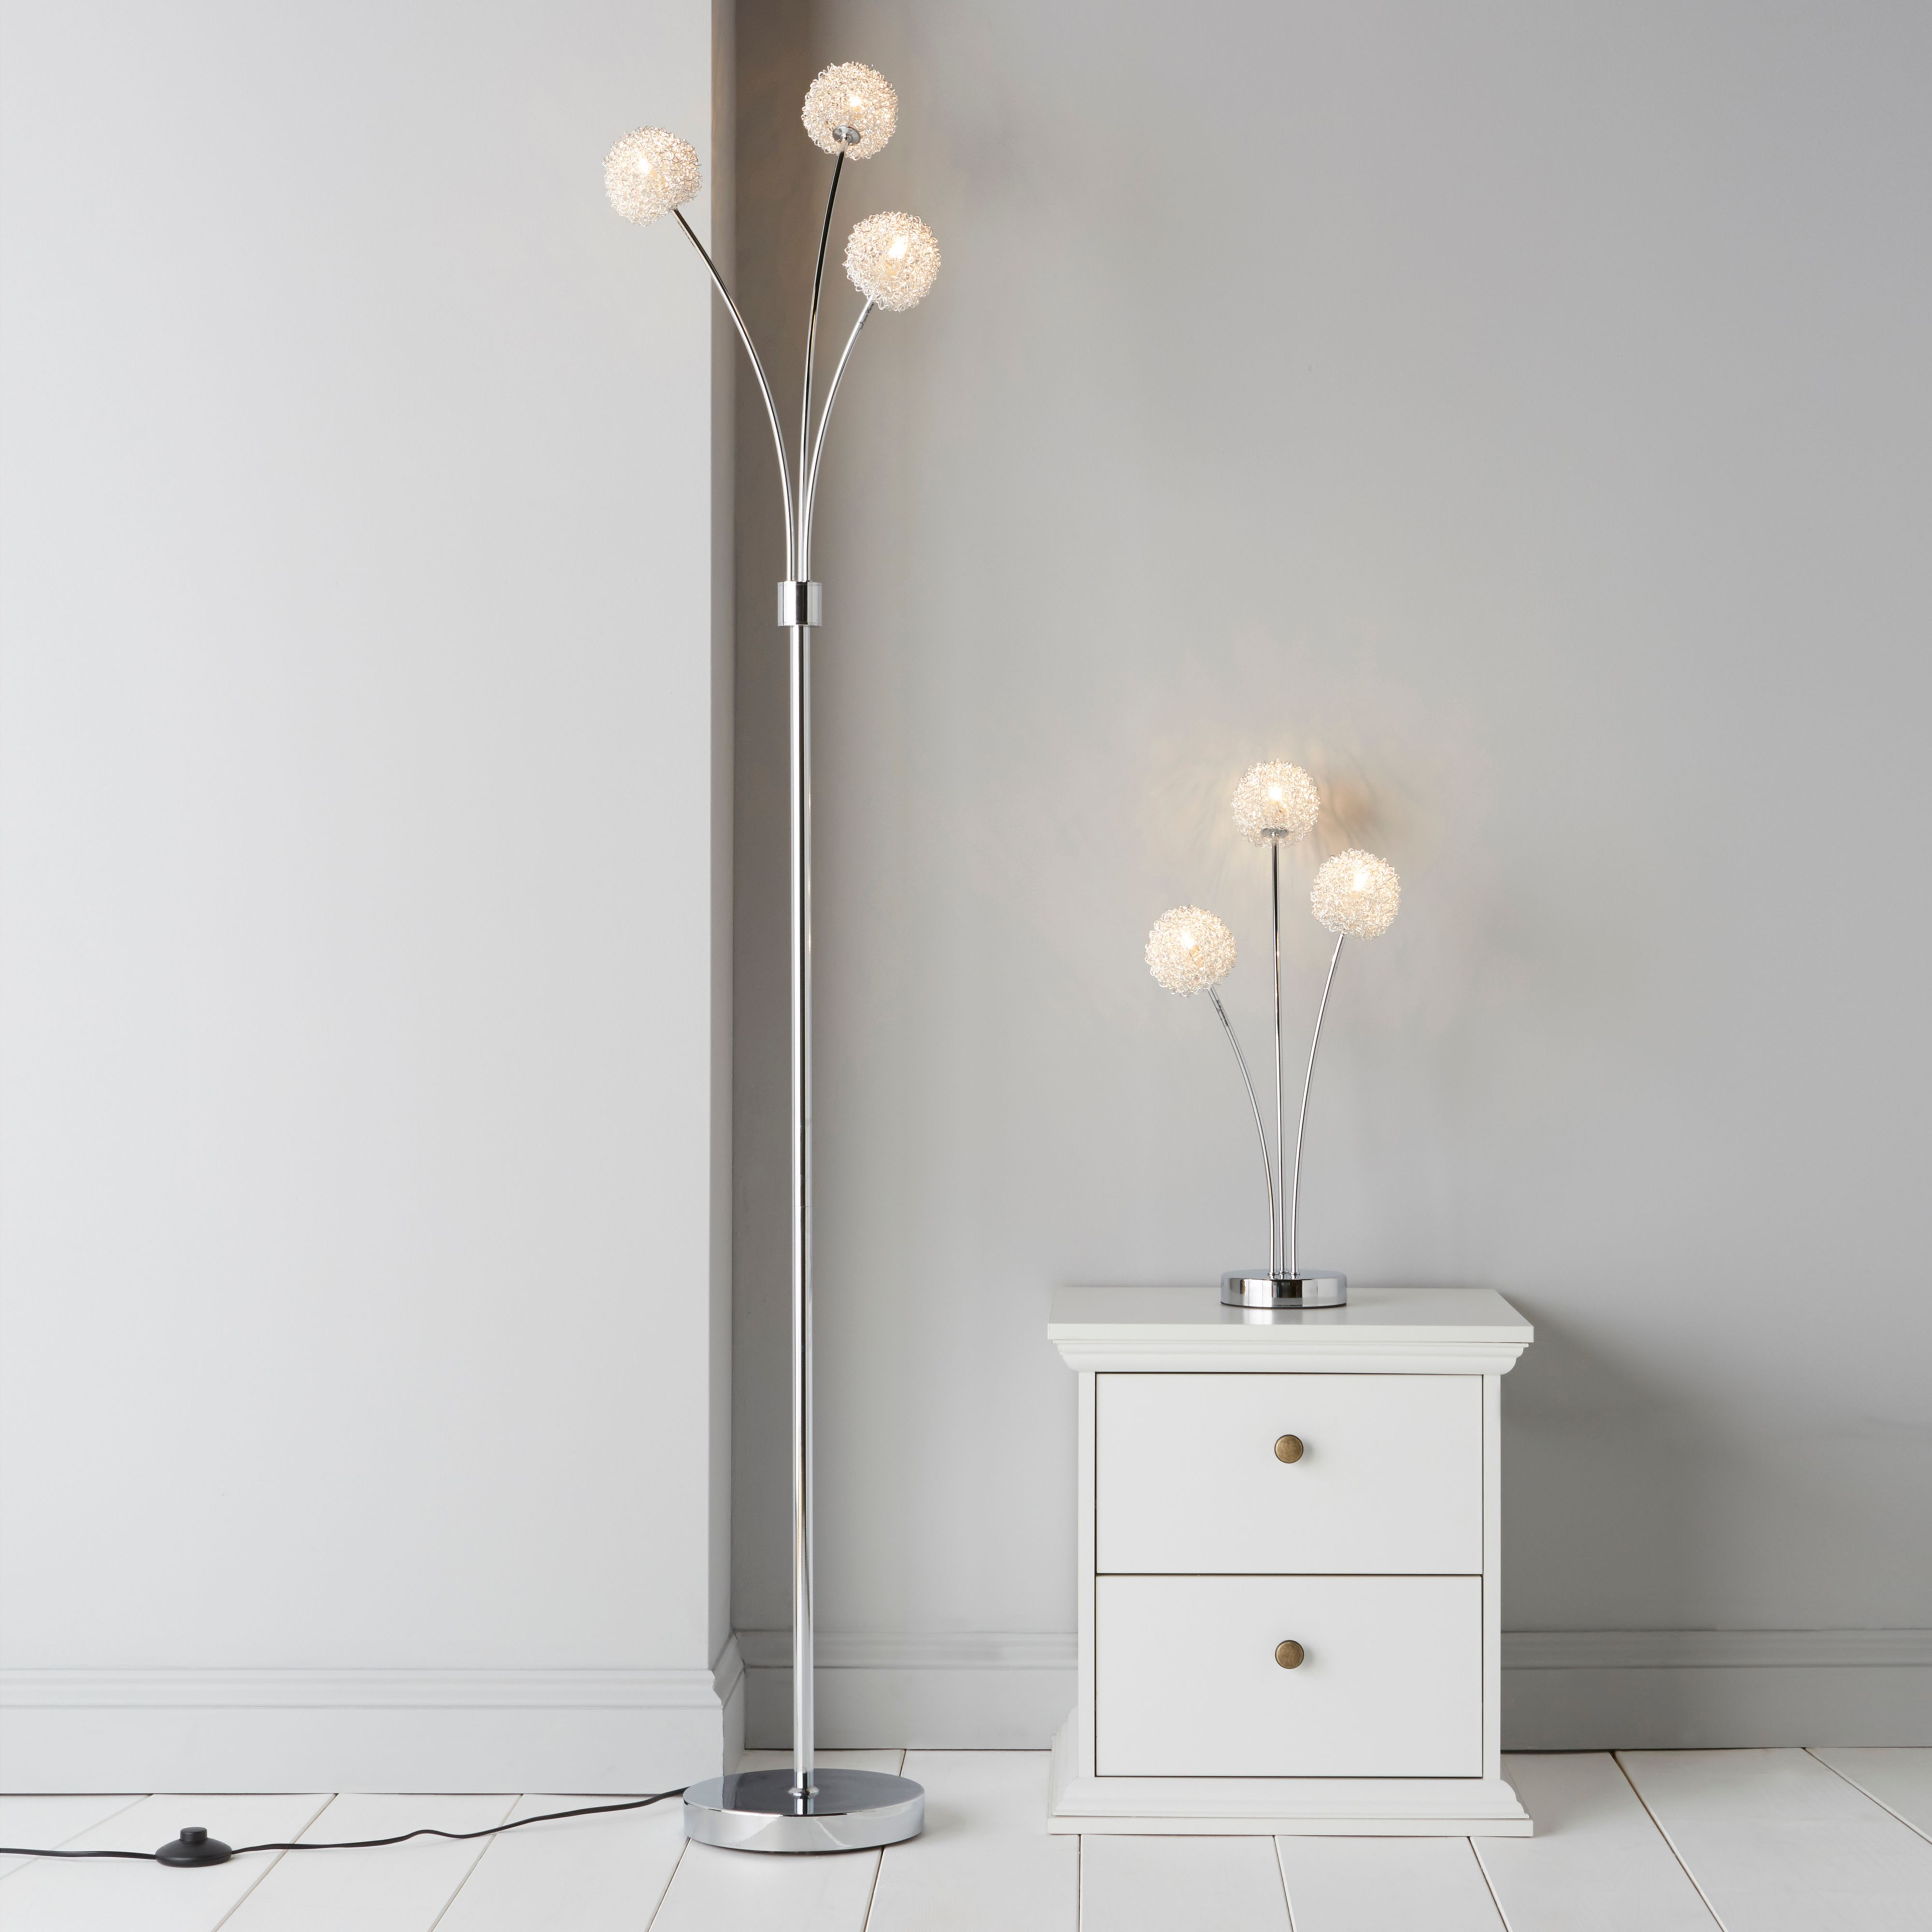 ceramic dallas free lamps overstock table today home lamp shipping chrome white garden led product